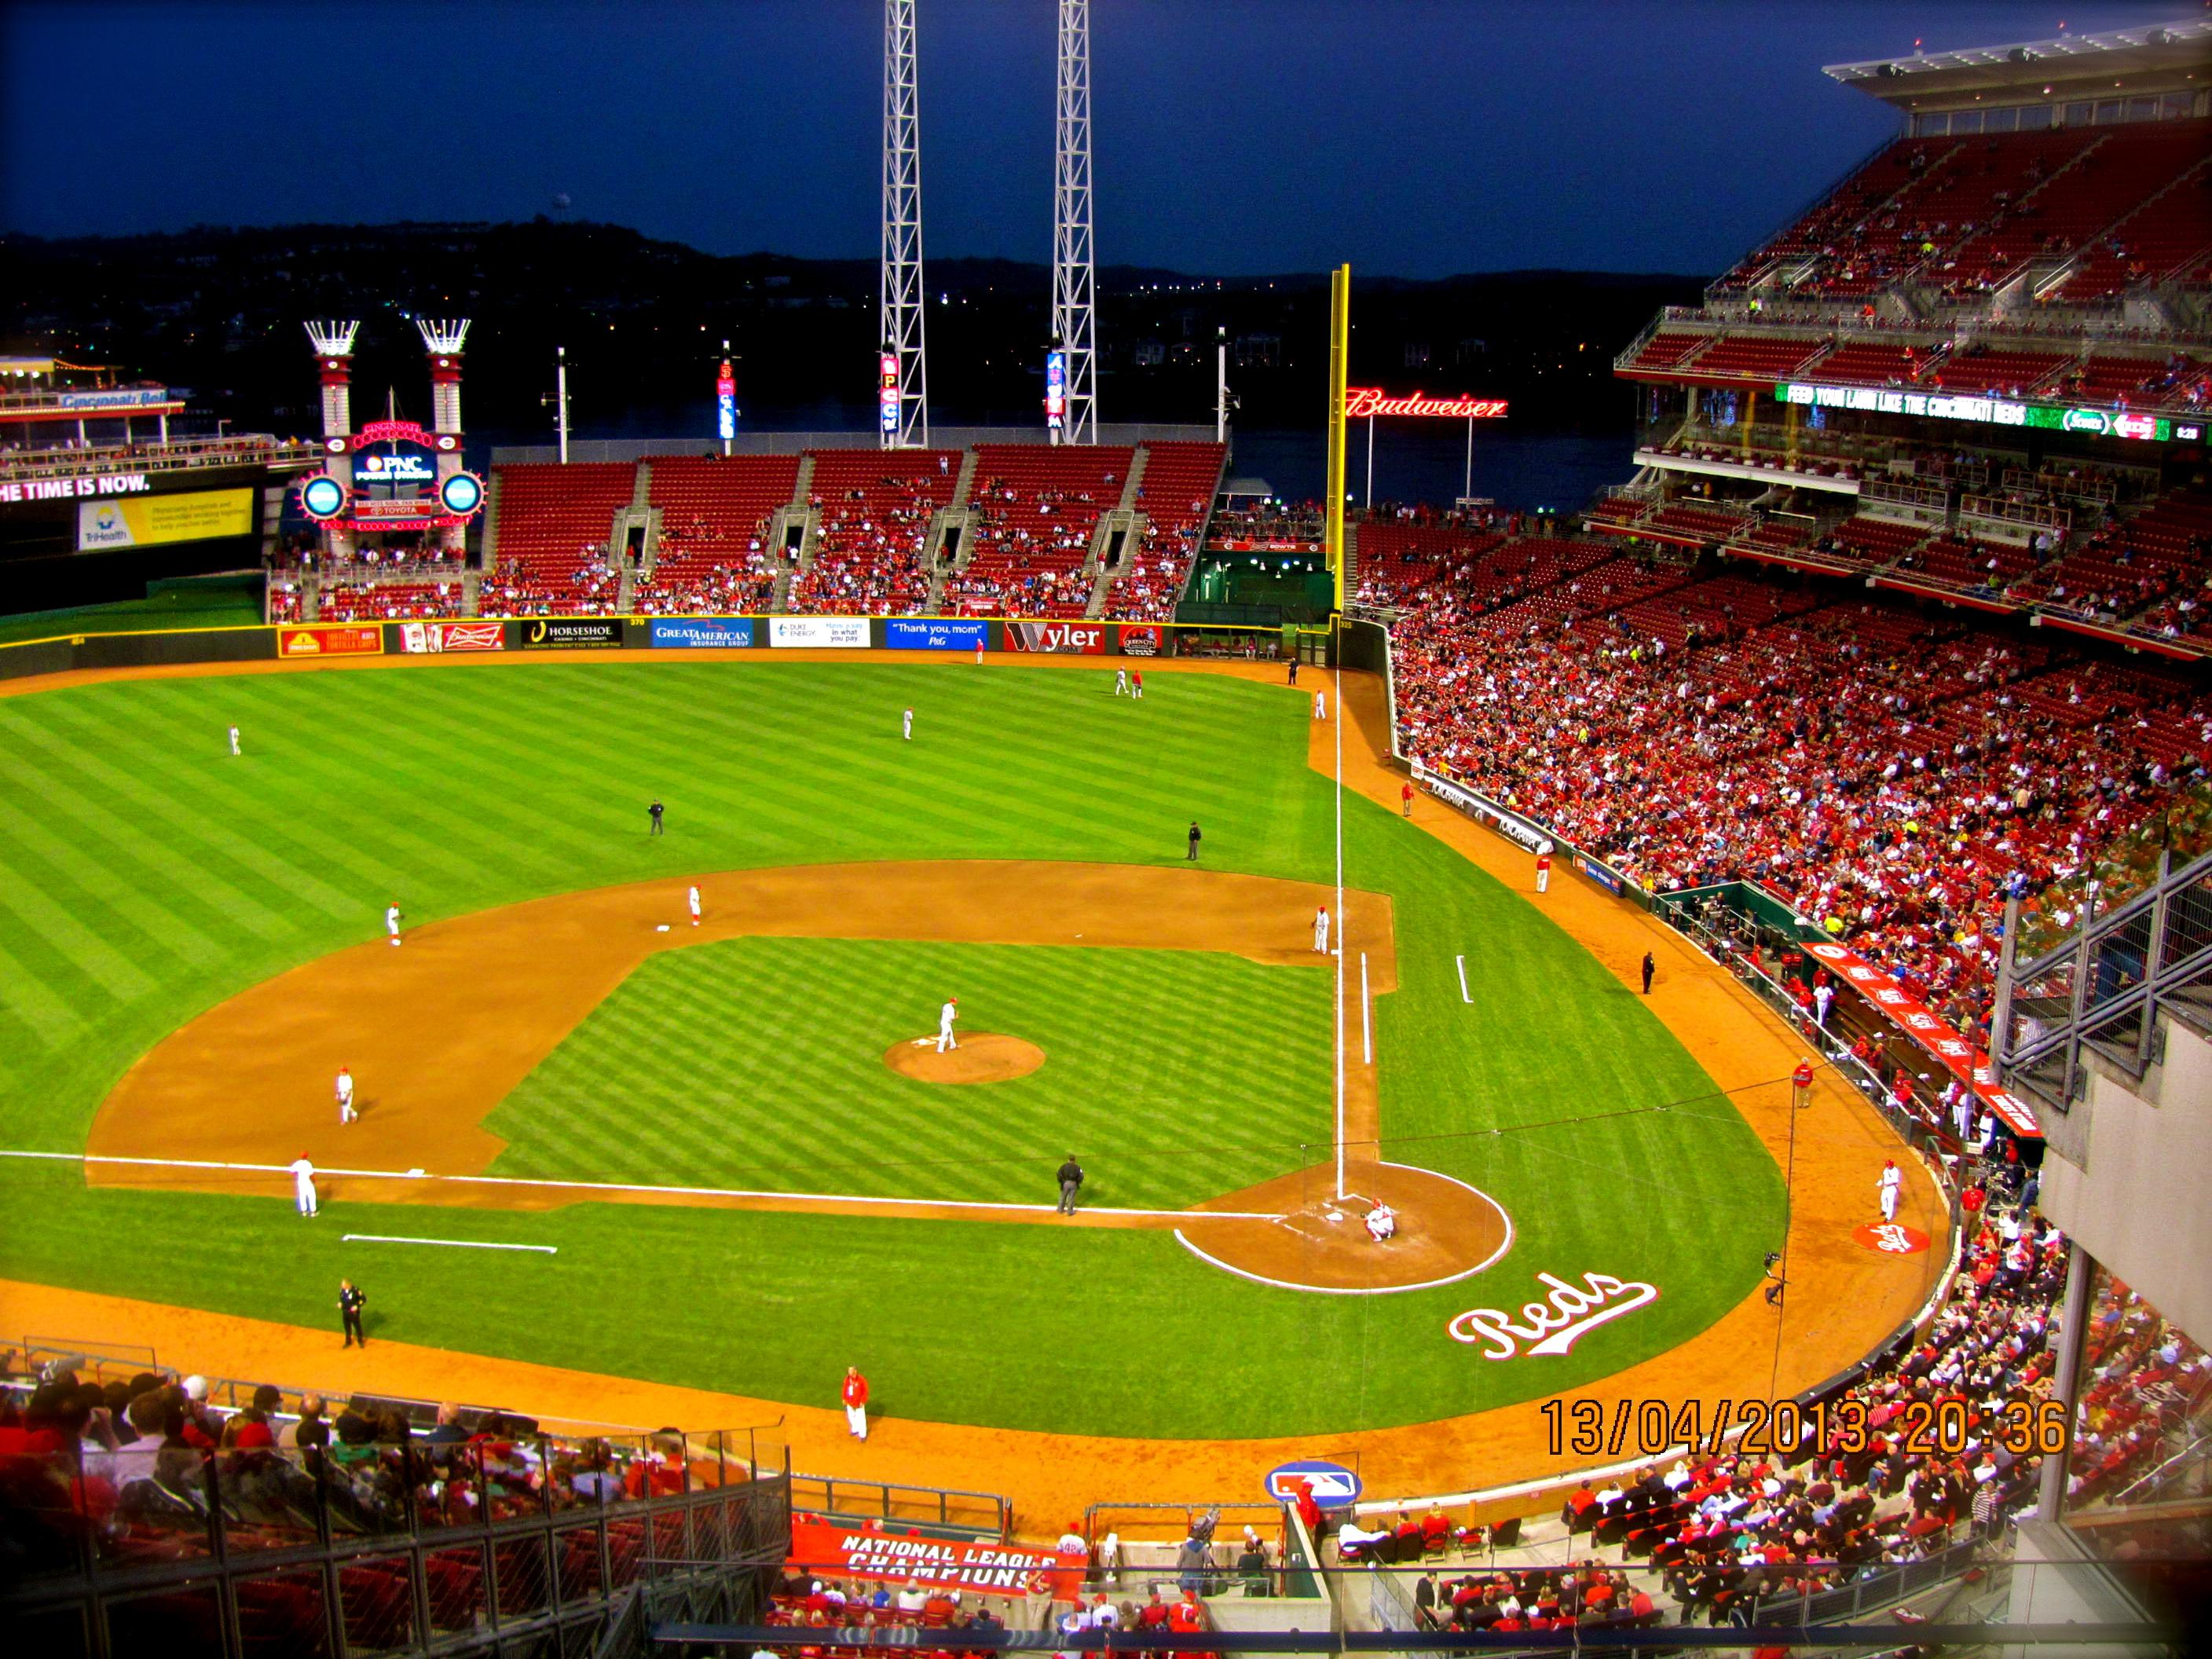 Seat View For Great American Ball Park Standing Room Only Row 1 N